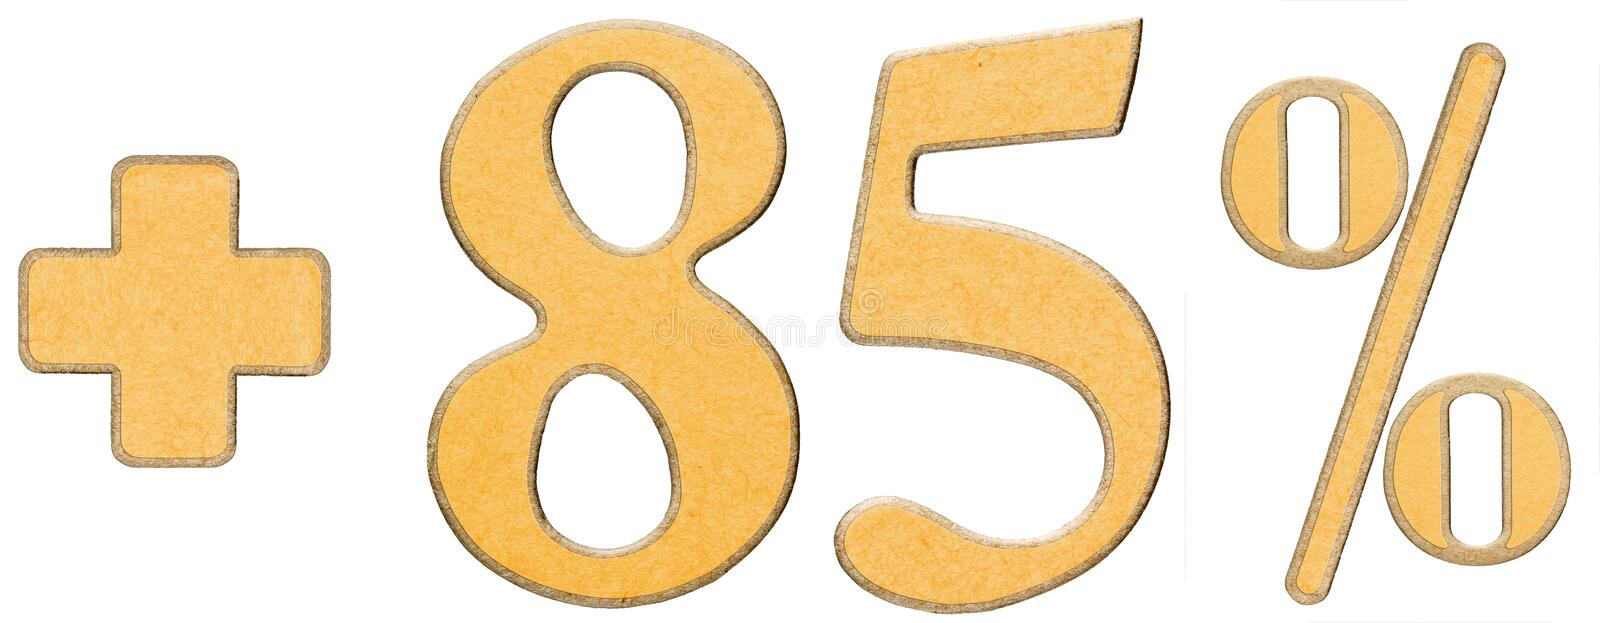 Download Percent Benefits, Plus 85 Eighty Five Percent, Numerals Isolated Stock Photo - Image: 83713577